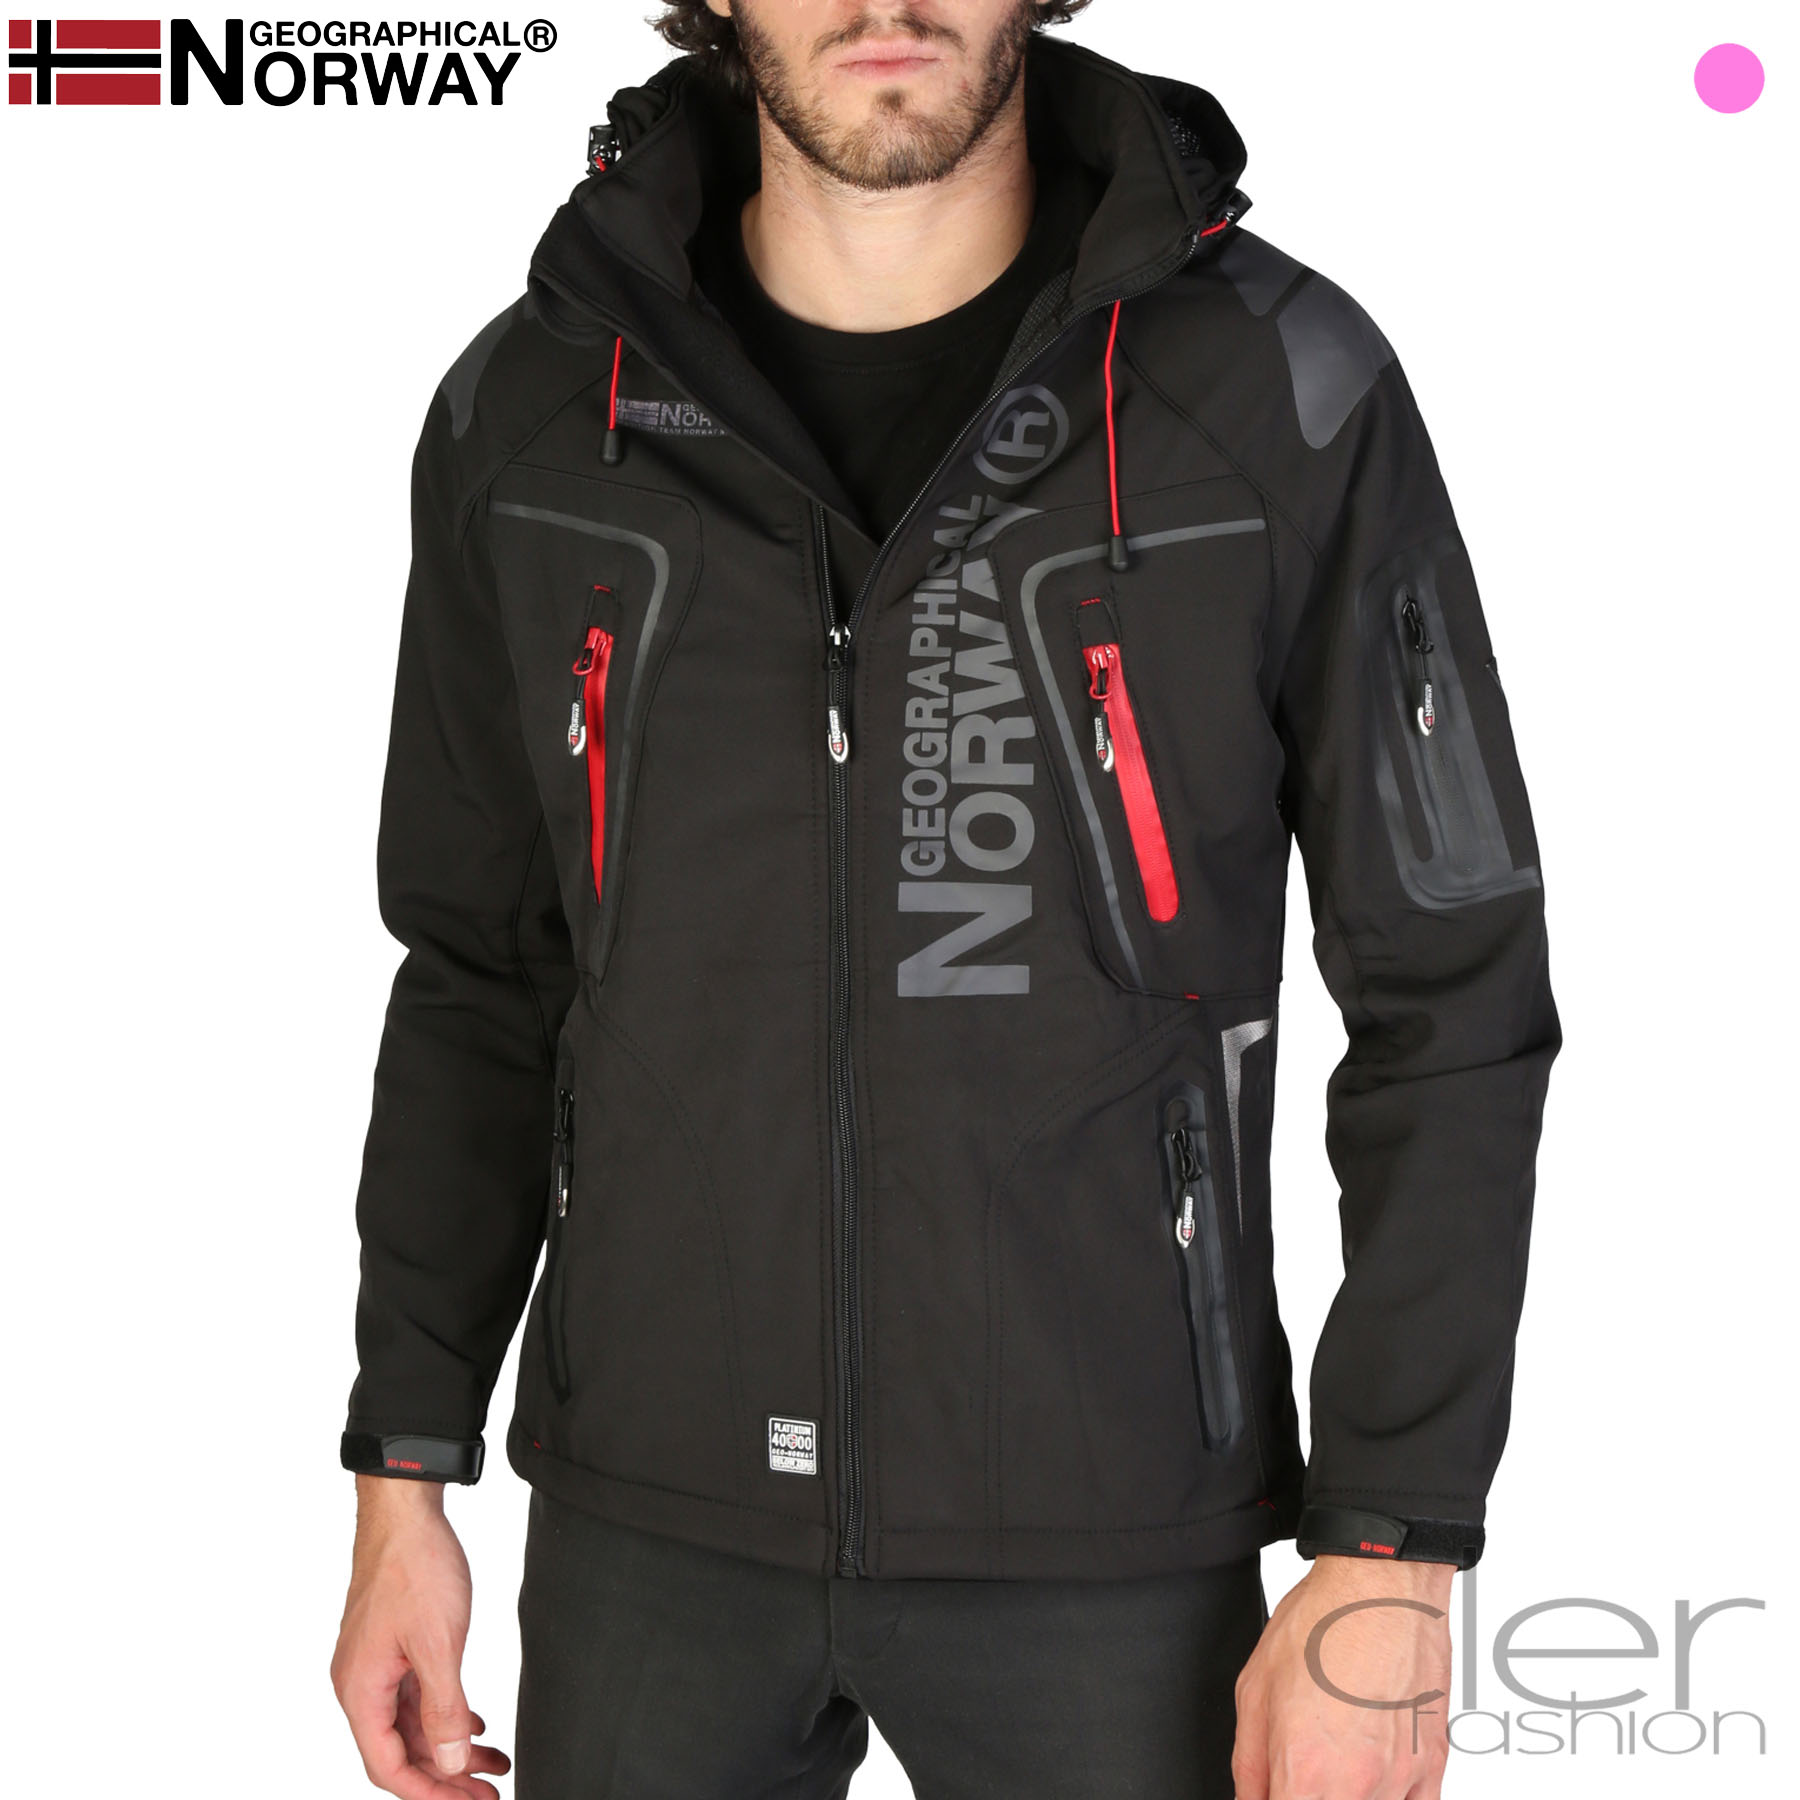 Vestes Geographical Norway Techno_man Homme Noir 93721